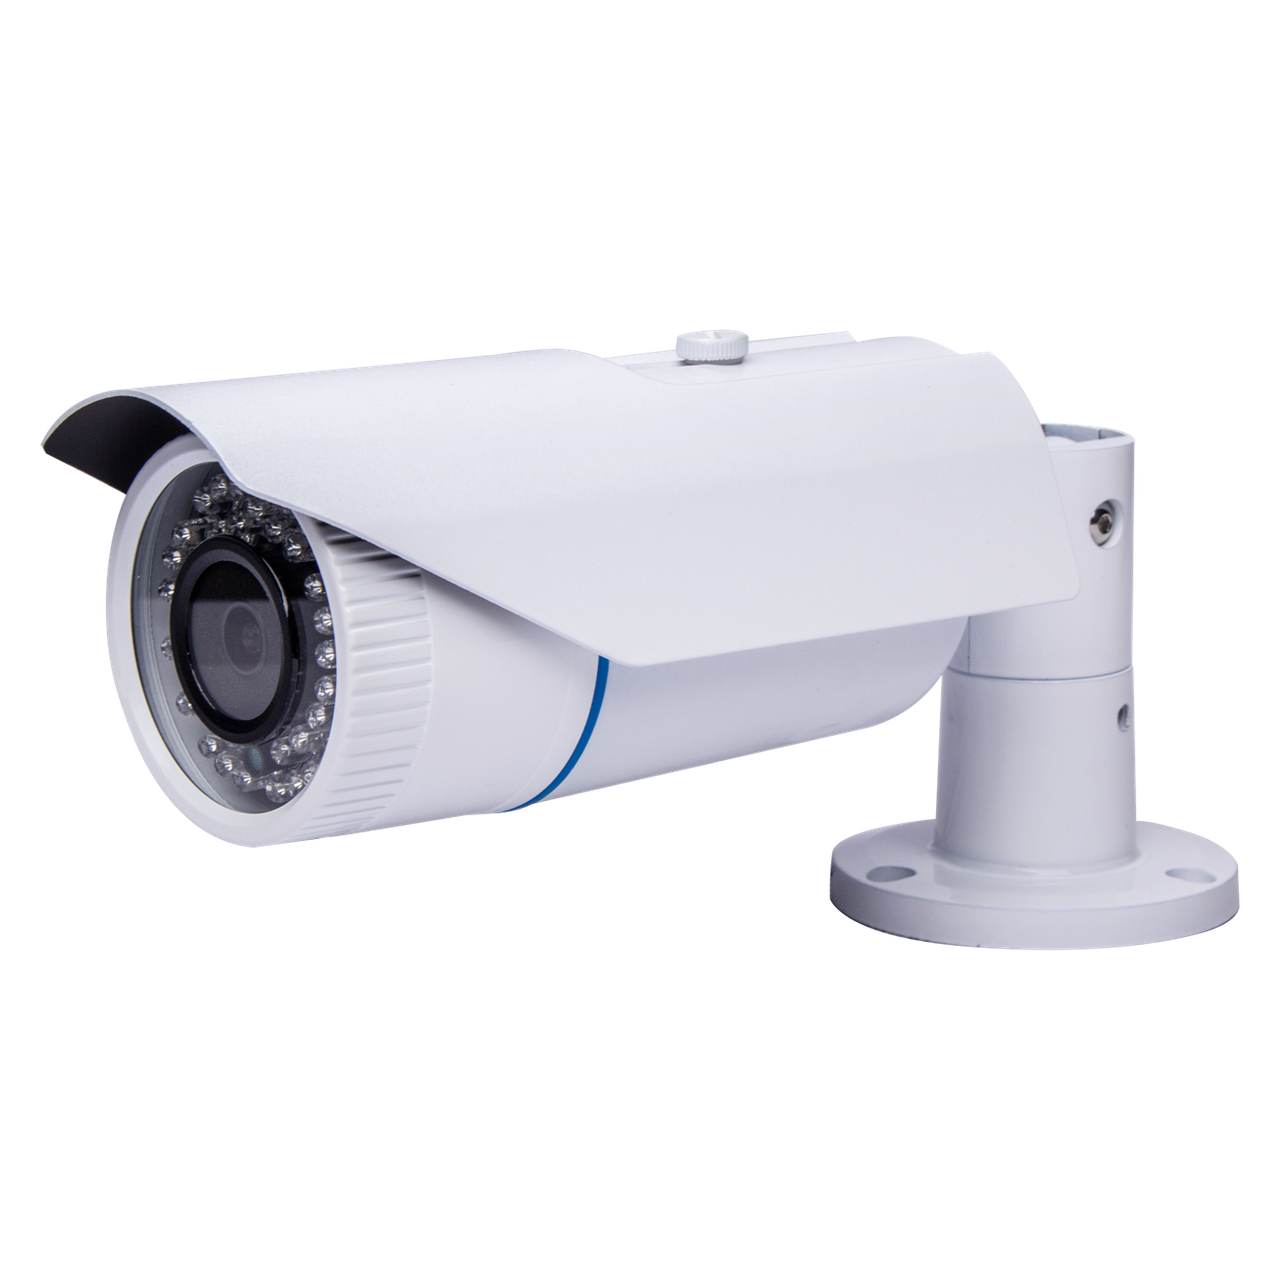 Наружная IP камера Green Vision GV-104-IP-X-COS50-20 POE 5MP